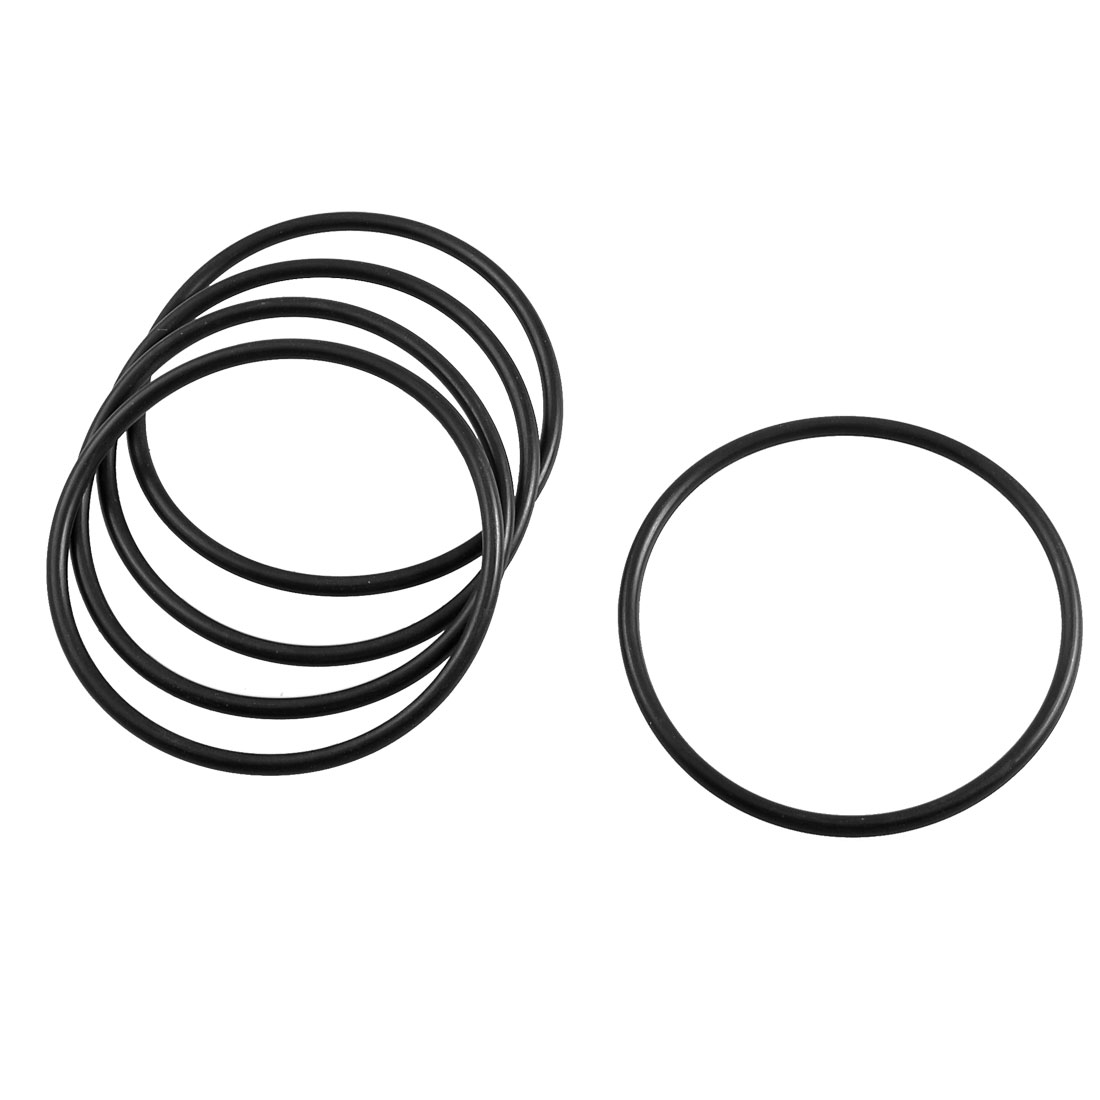 5 Pcs Black Rubber Sealing Oil Filter O Rings Gaskets 75mm x 68mm x 3.5mm